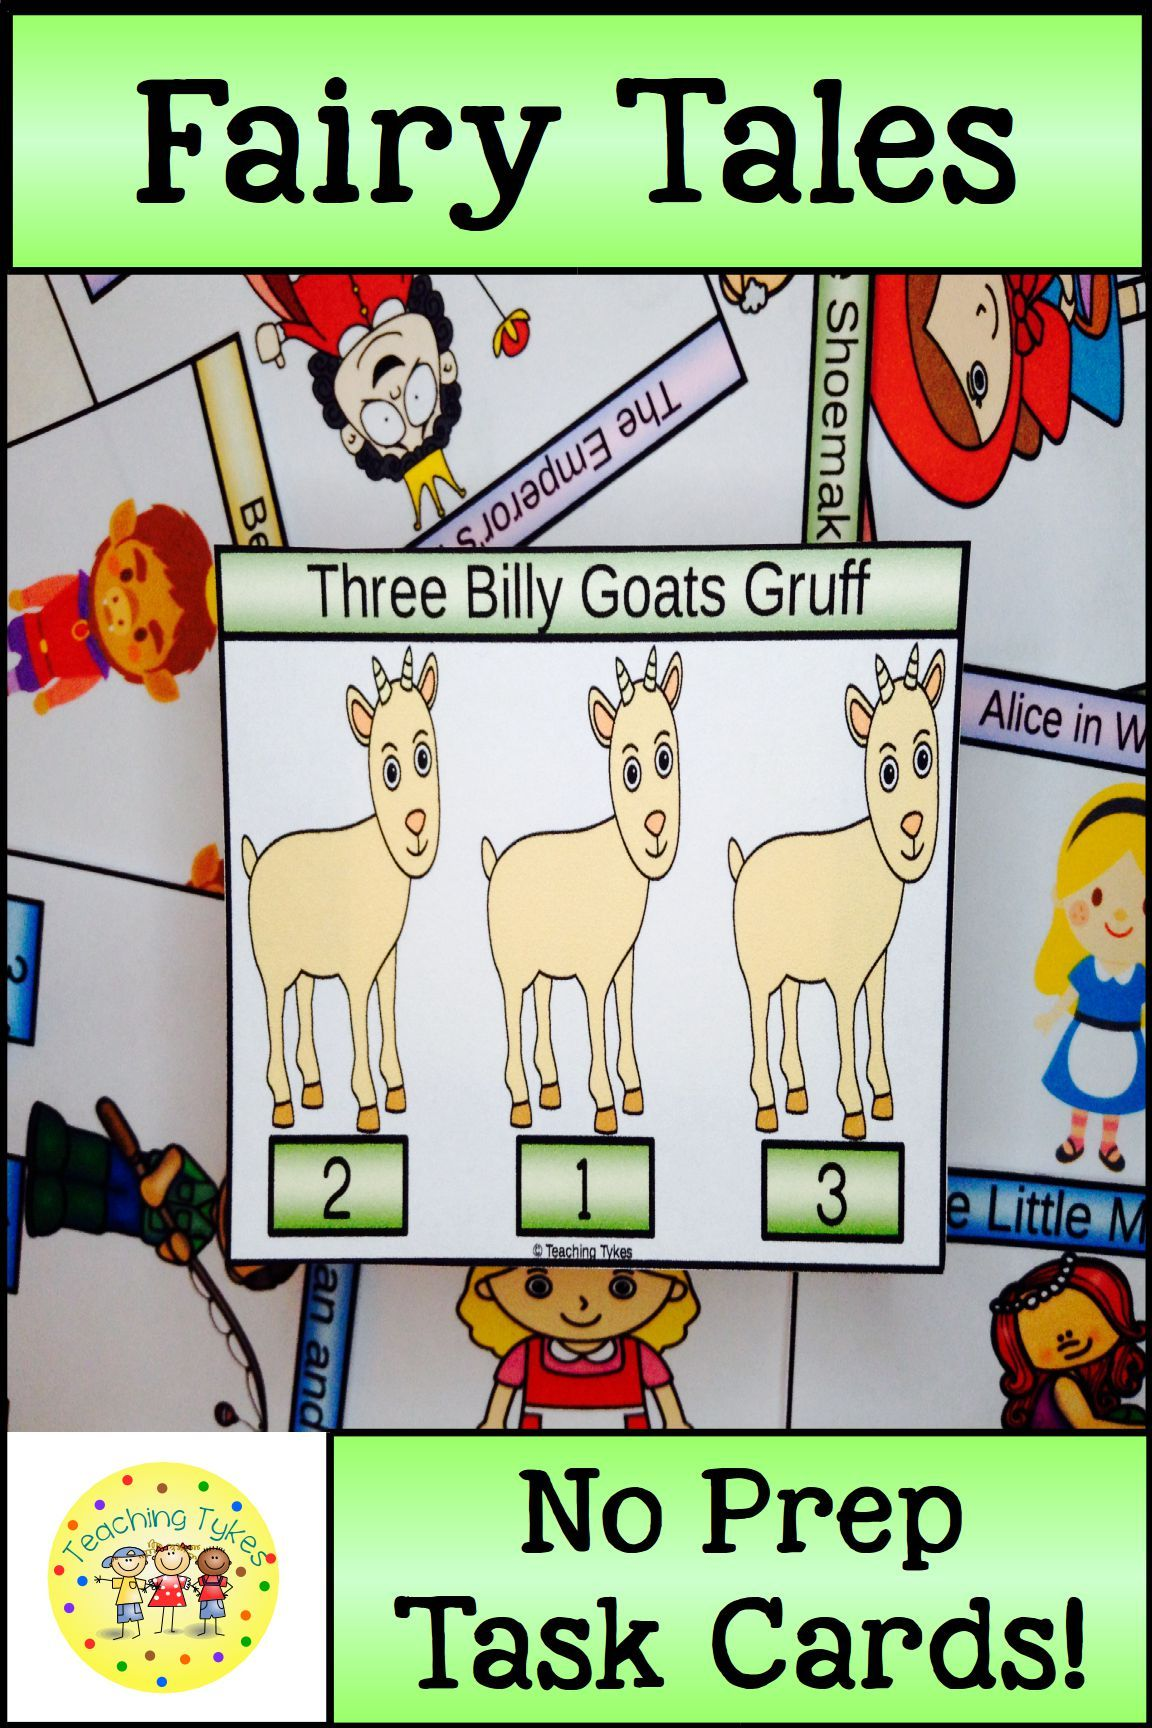 Three Billy Goats Gruff Task Cards With Images